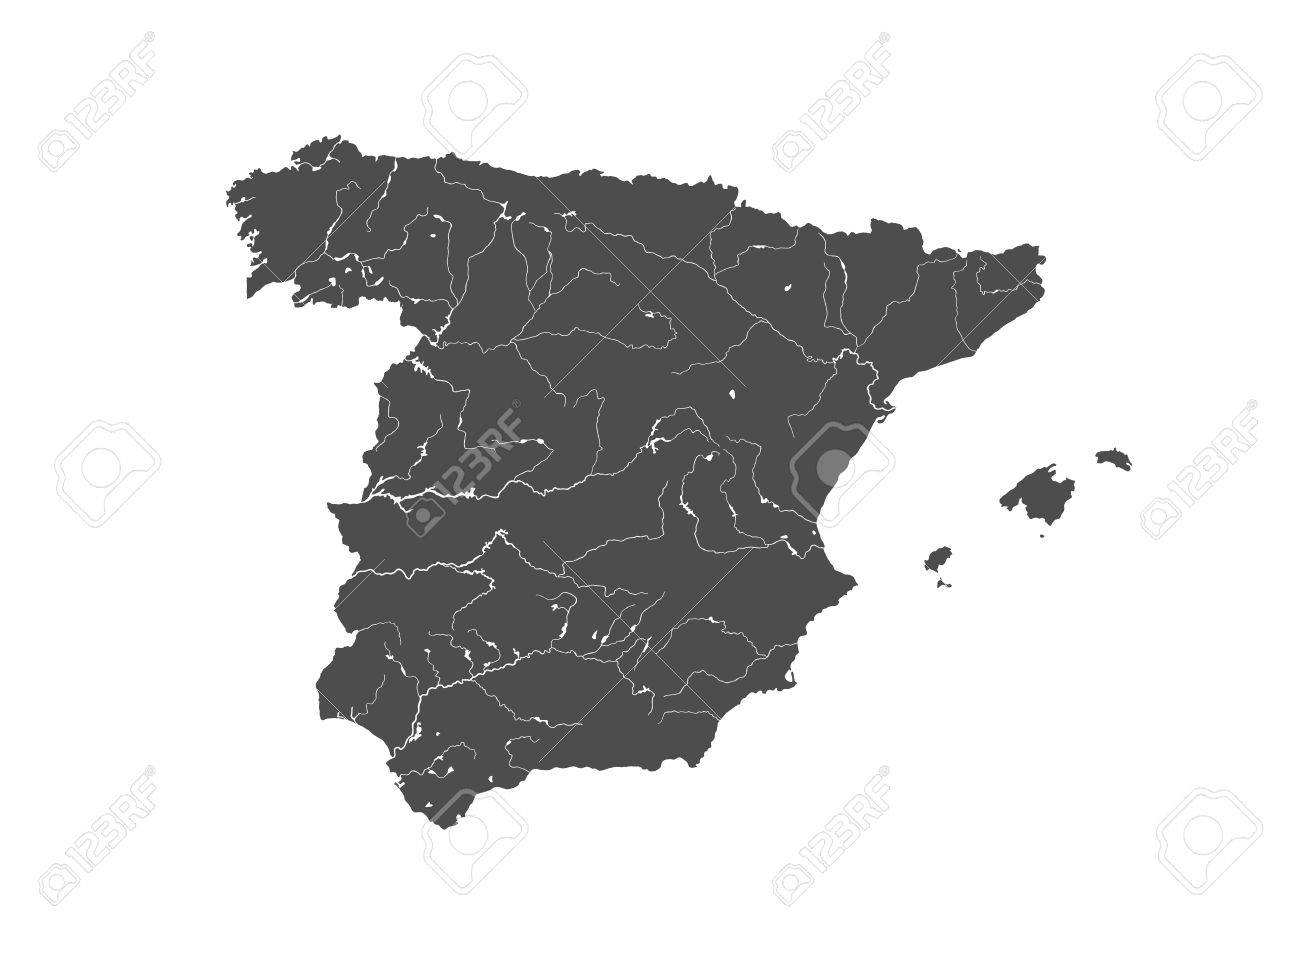 Map Of Spain Rivers.Map Of Spain With Rivers